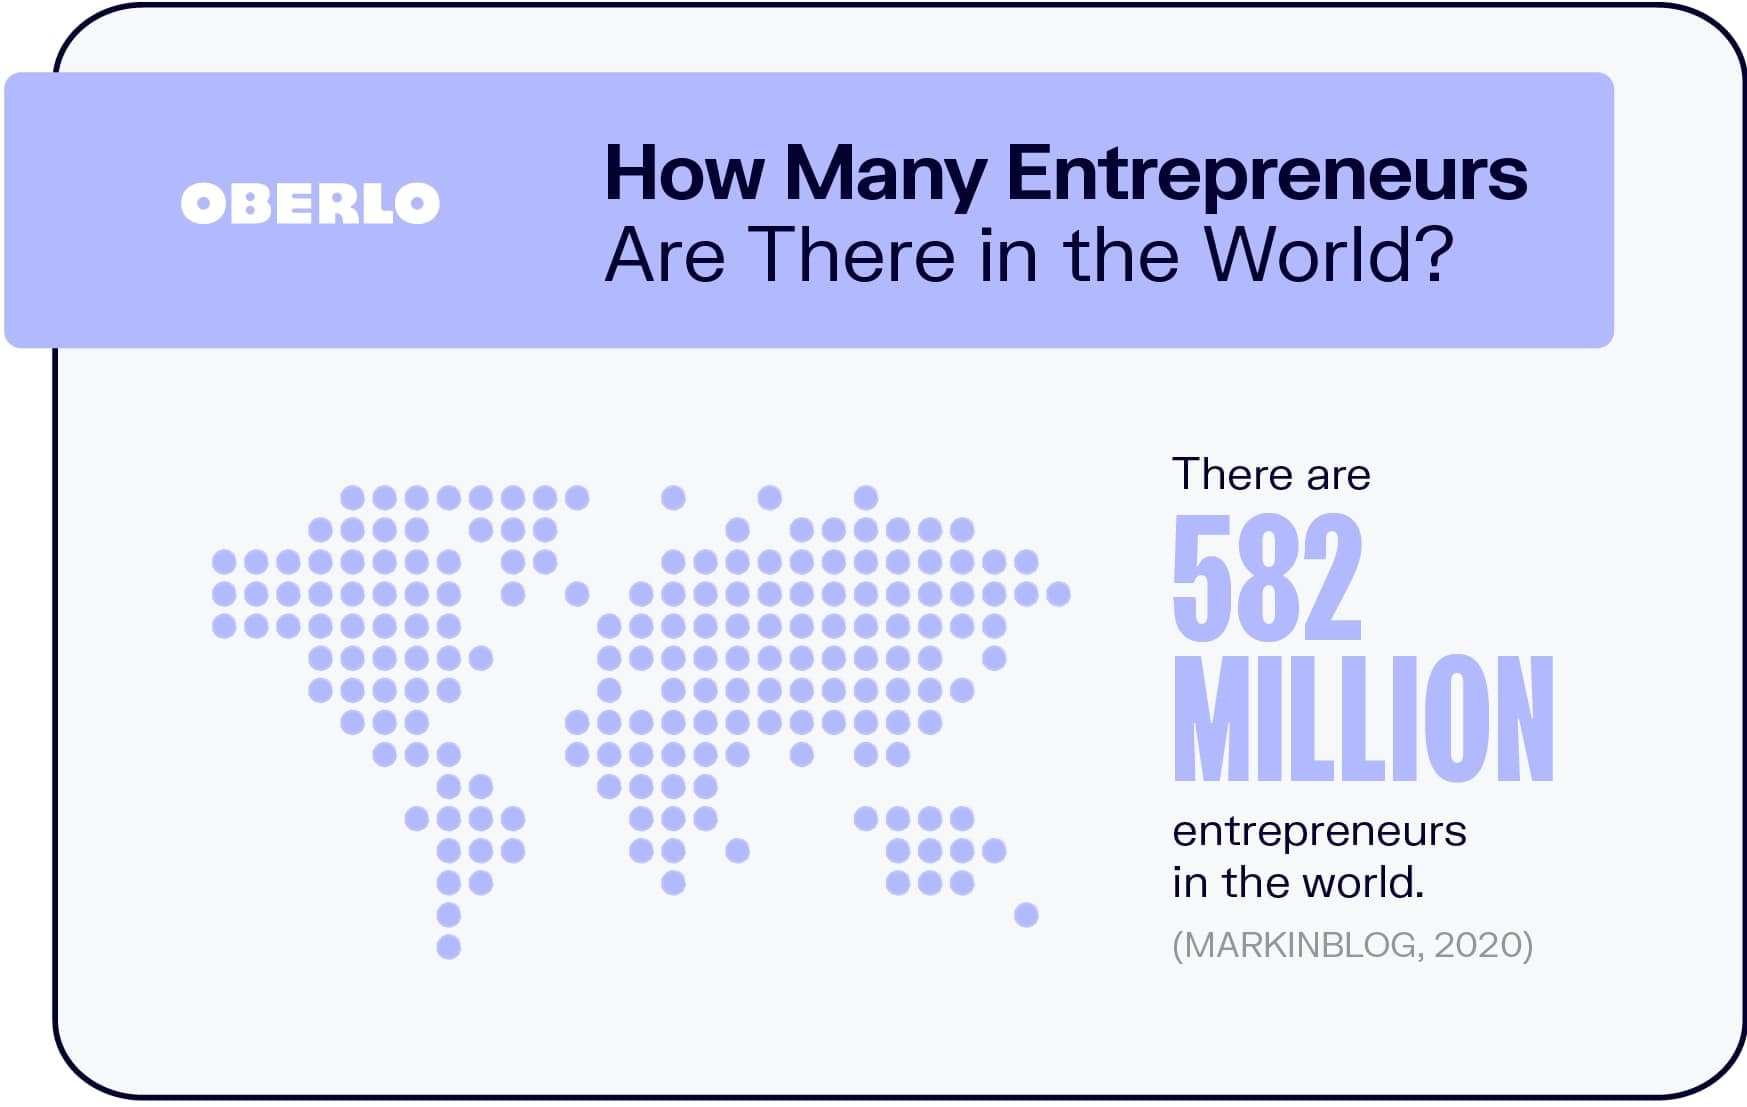 How Many Entrepreneurs Are There in the World?